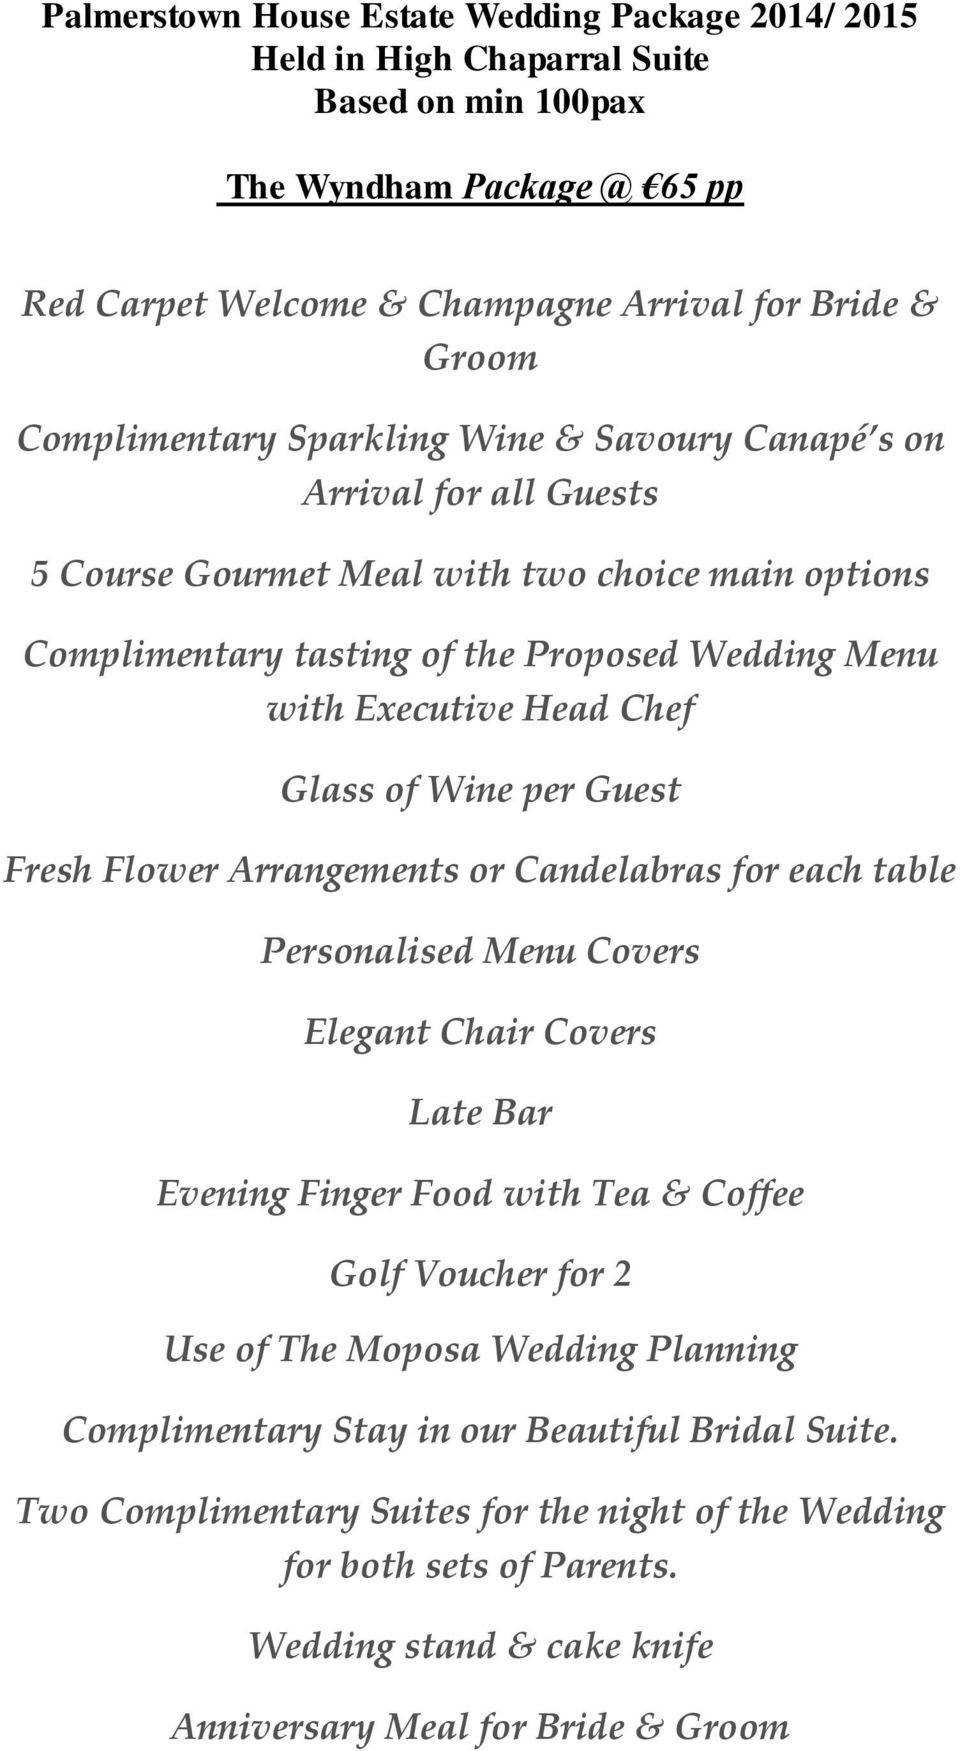 Executive Head Chef Glass of Wine per Guest Fresh Flower Arrangements or Candelabras for each table Personalised Menu Covers Late Bar Evening Finger Food with Tea & Coffee Golf Voucher